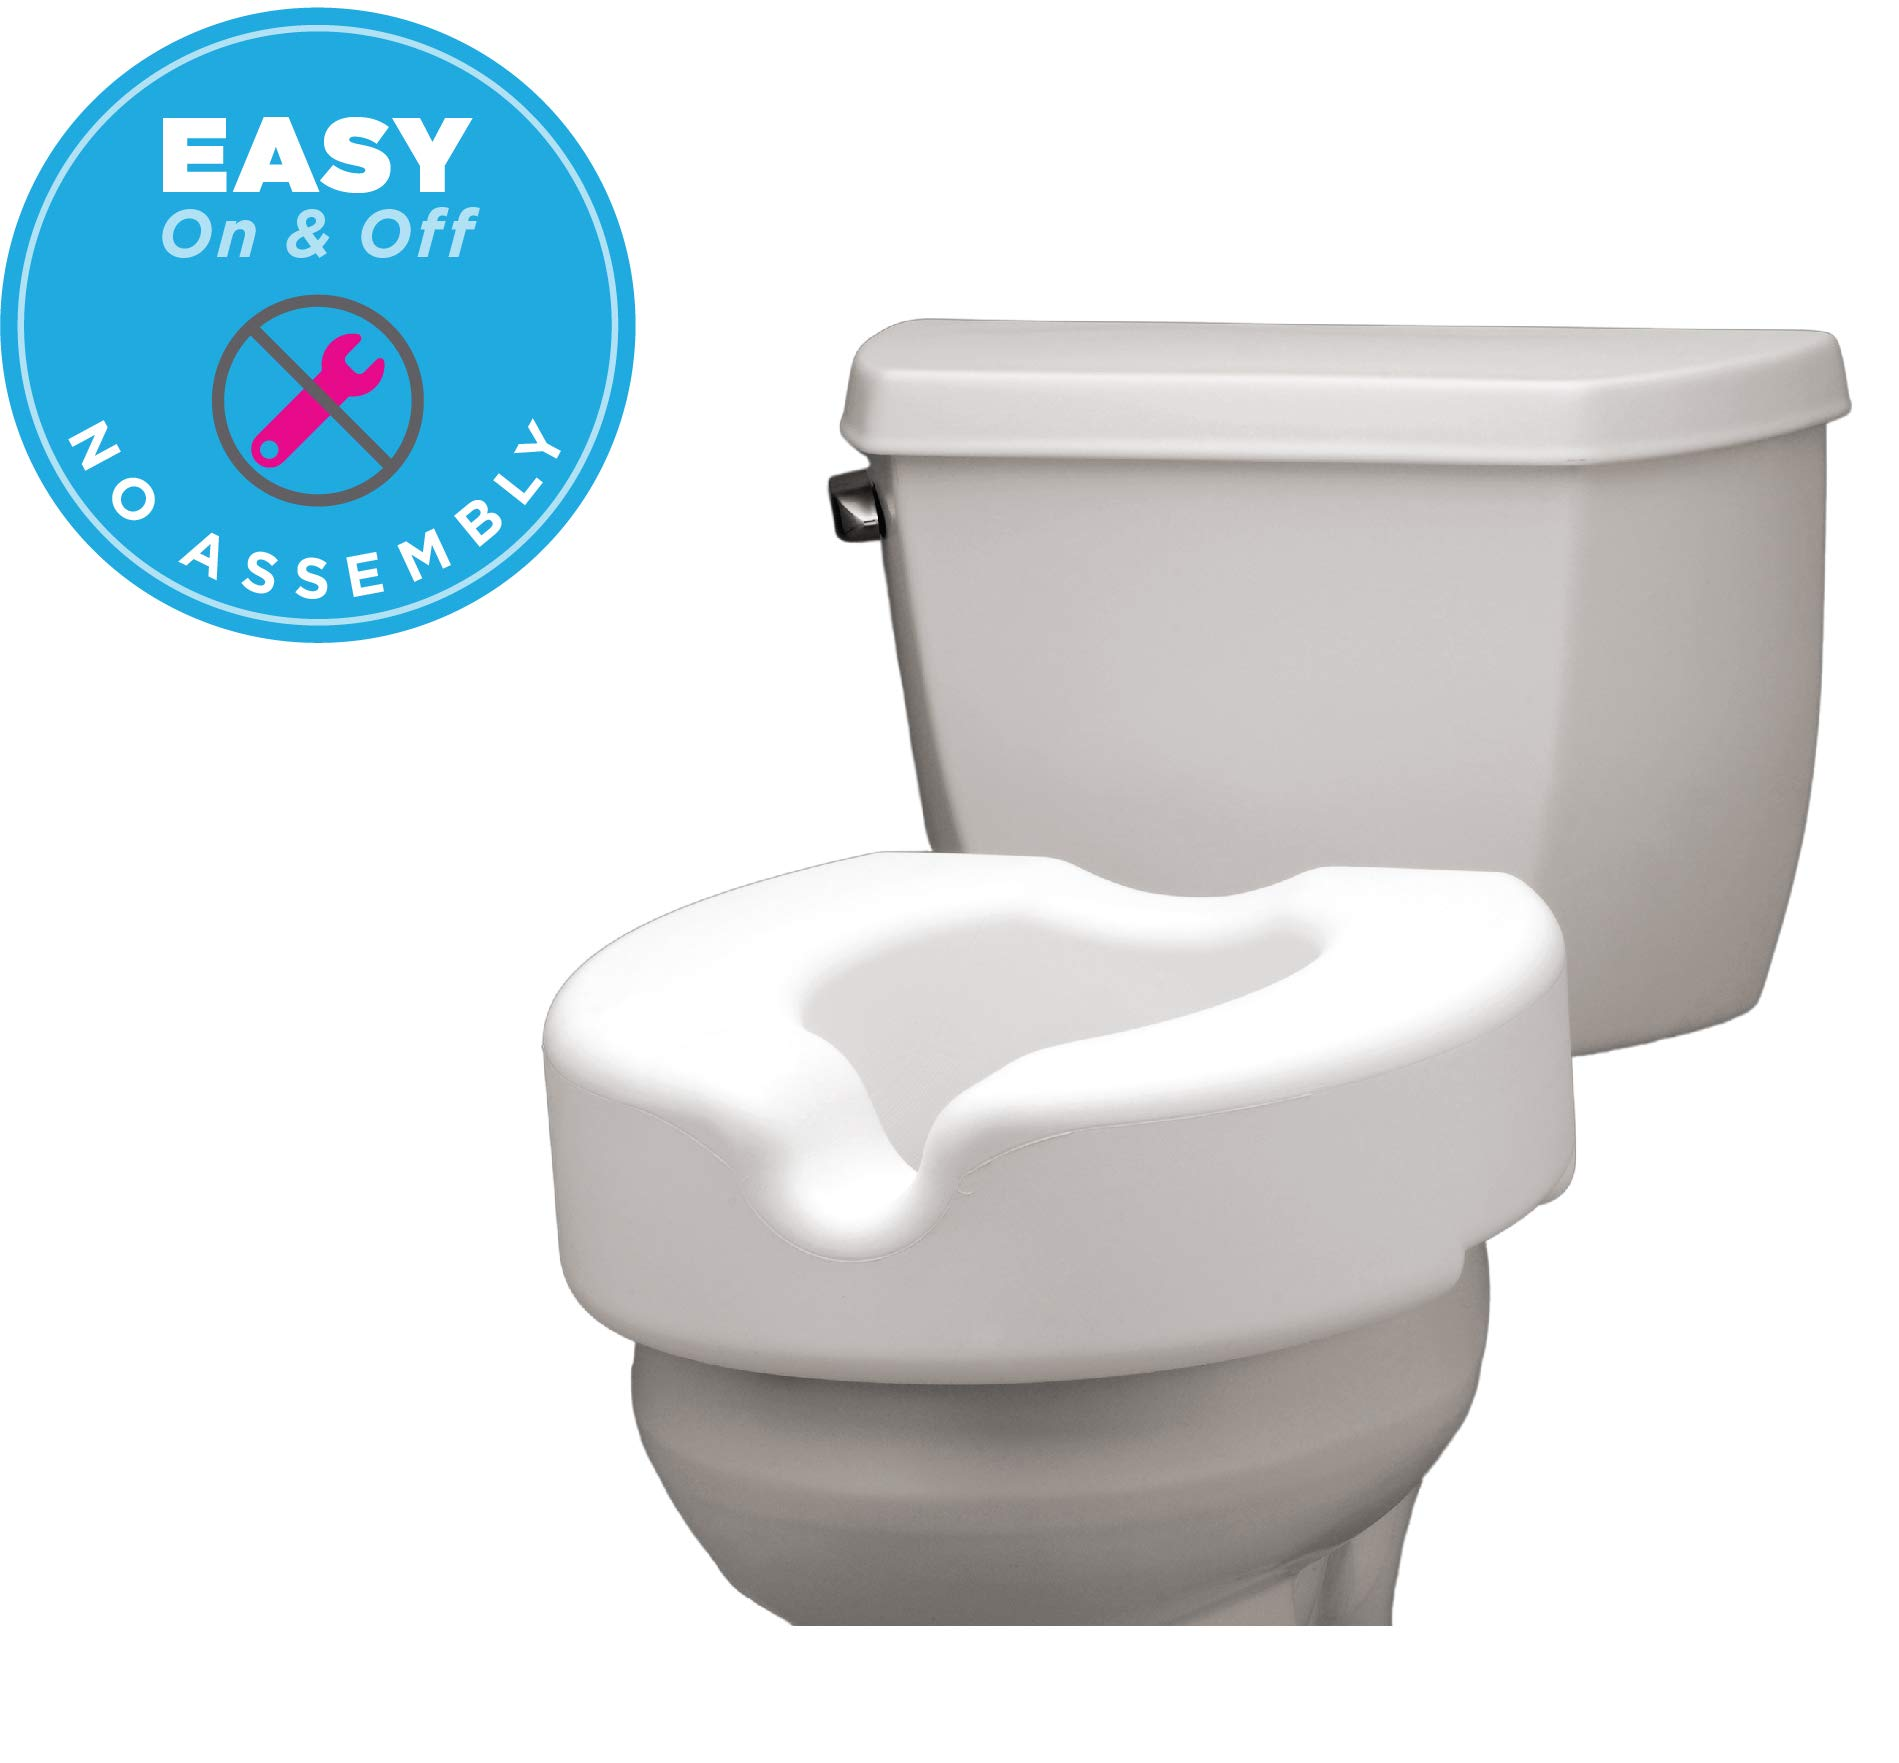 NOVA Elevated Raised Toilet Seat, Portable, Removable, for Standard and Elongated by NOVA Medical Products